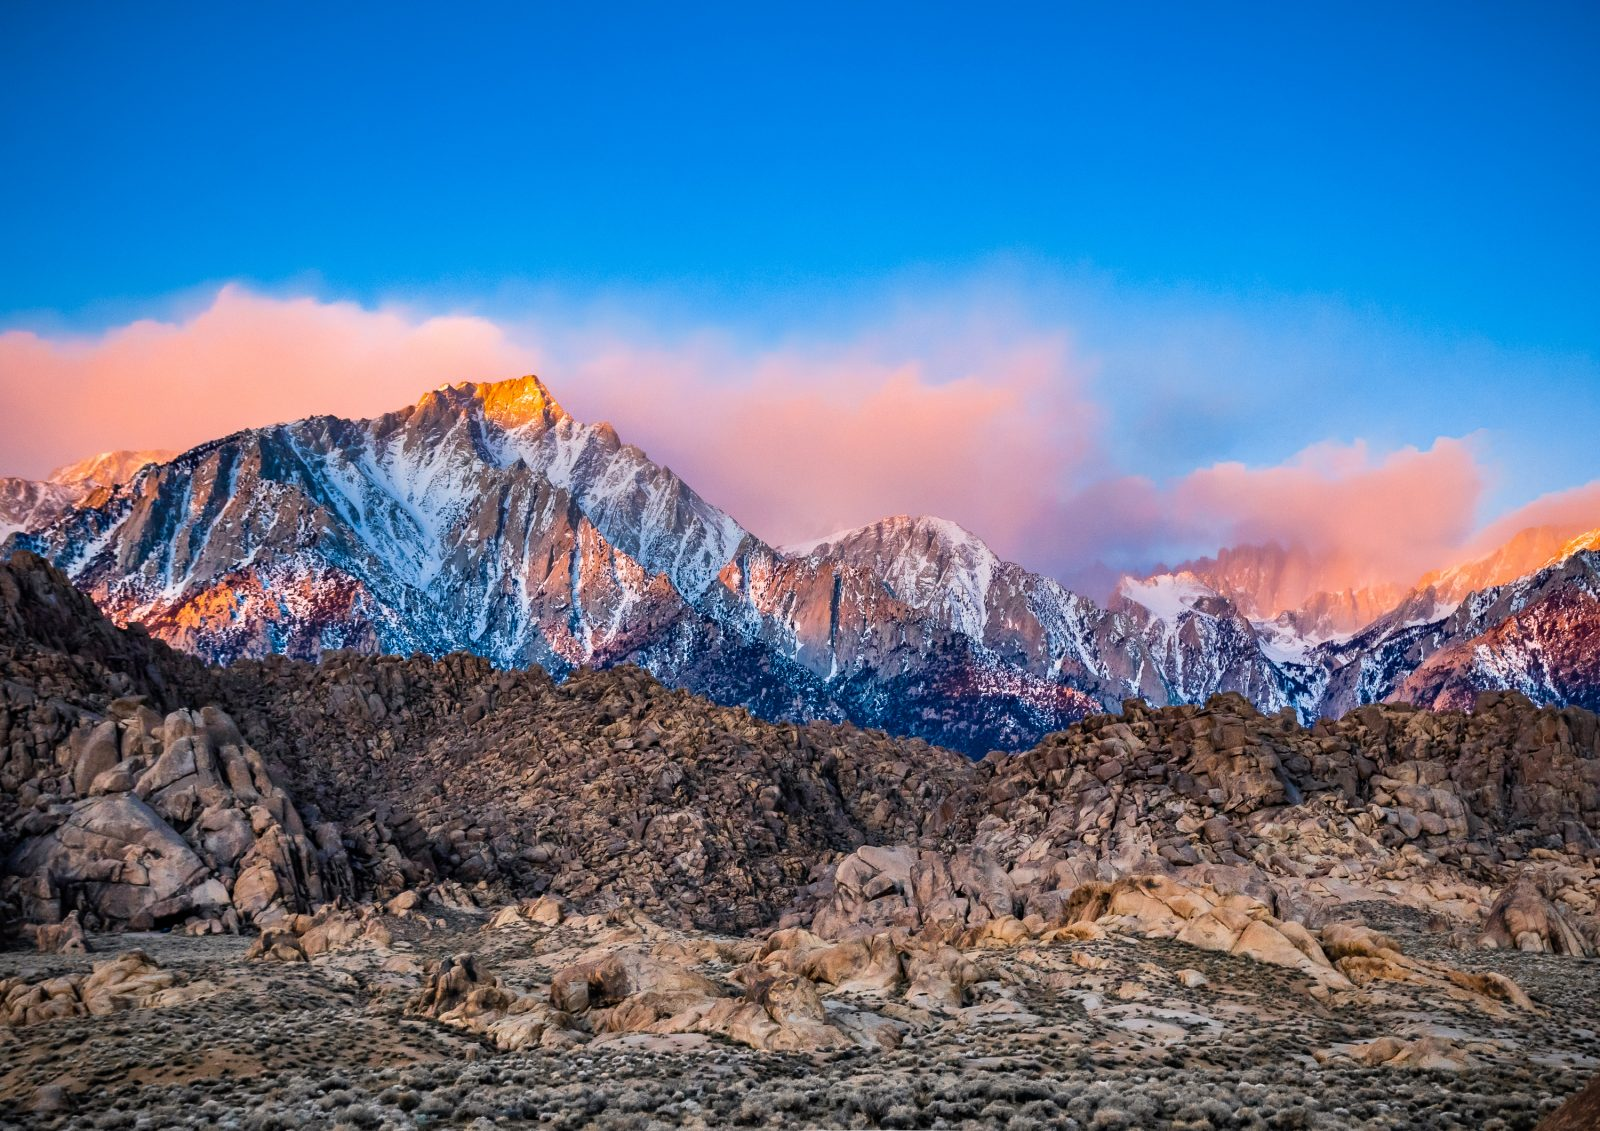 Cotton Candy & The Eastern Sierra